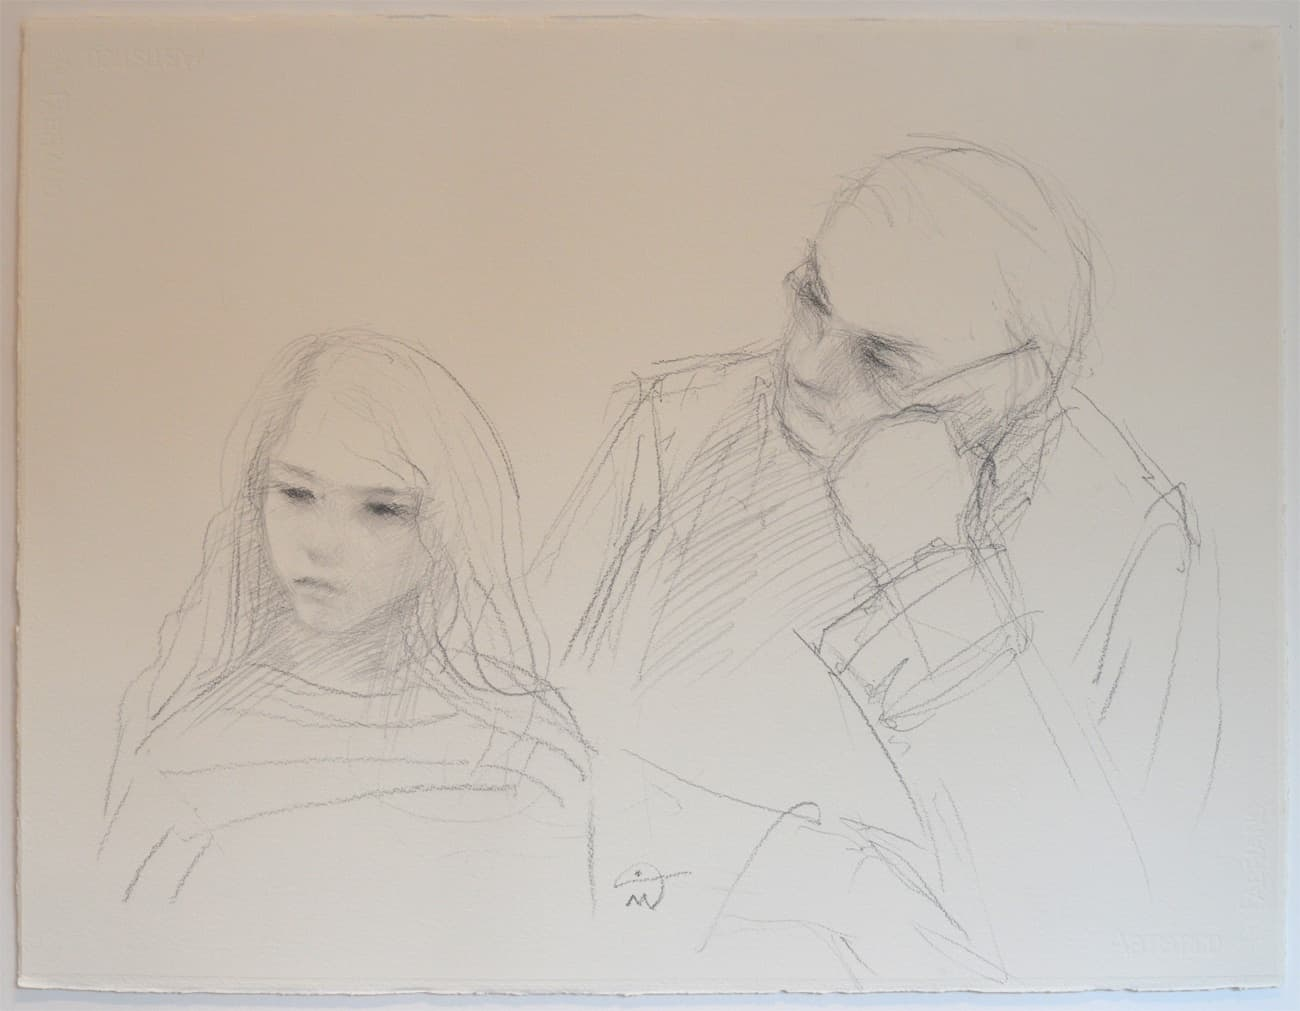 Emma and Michael. Portrait drawing. Pencil on paper.